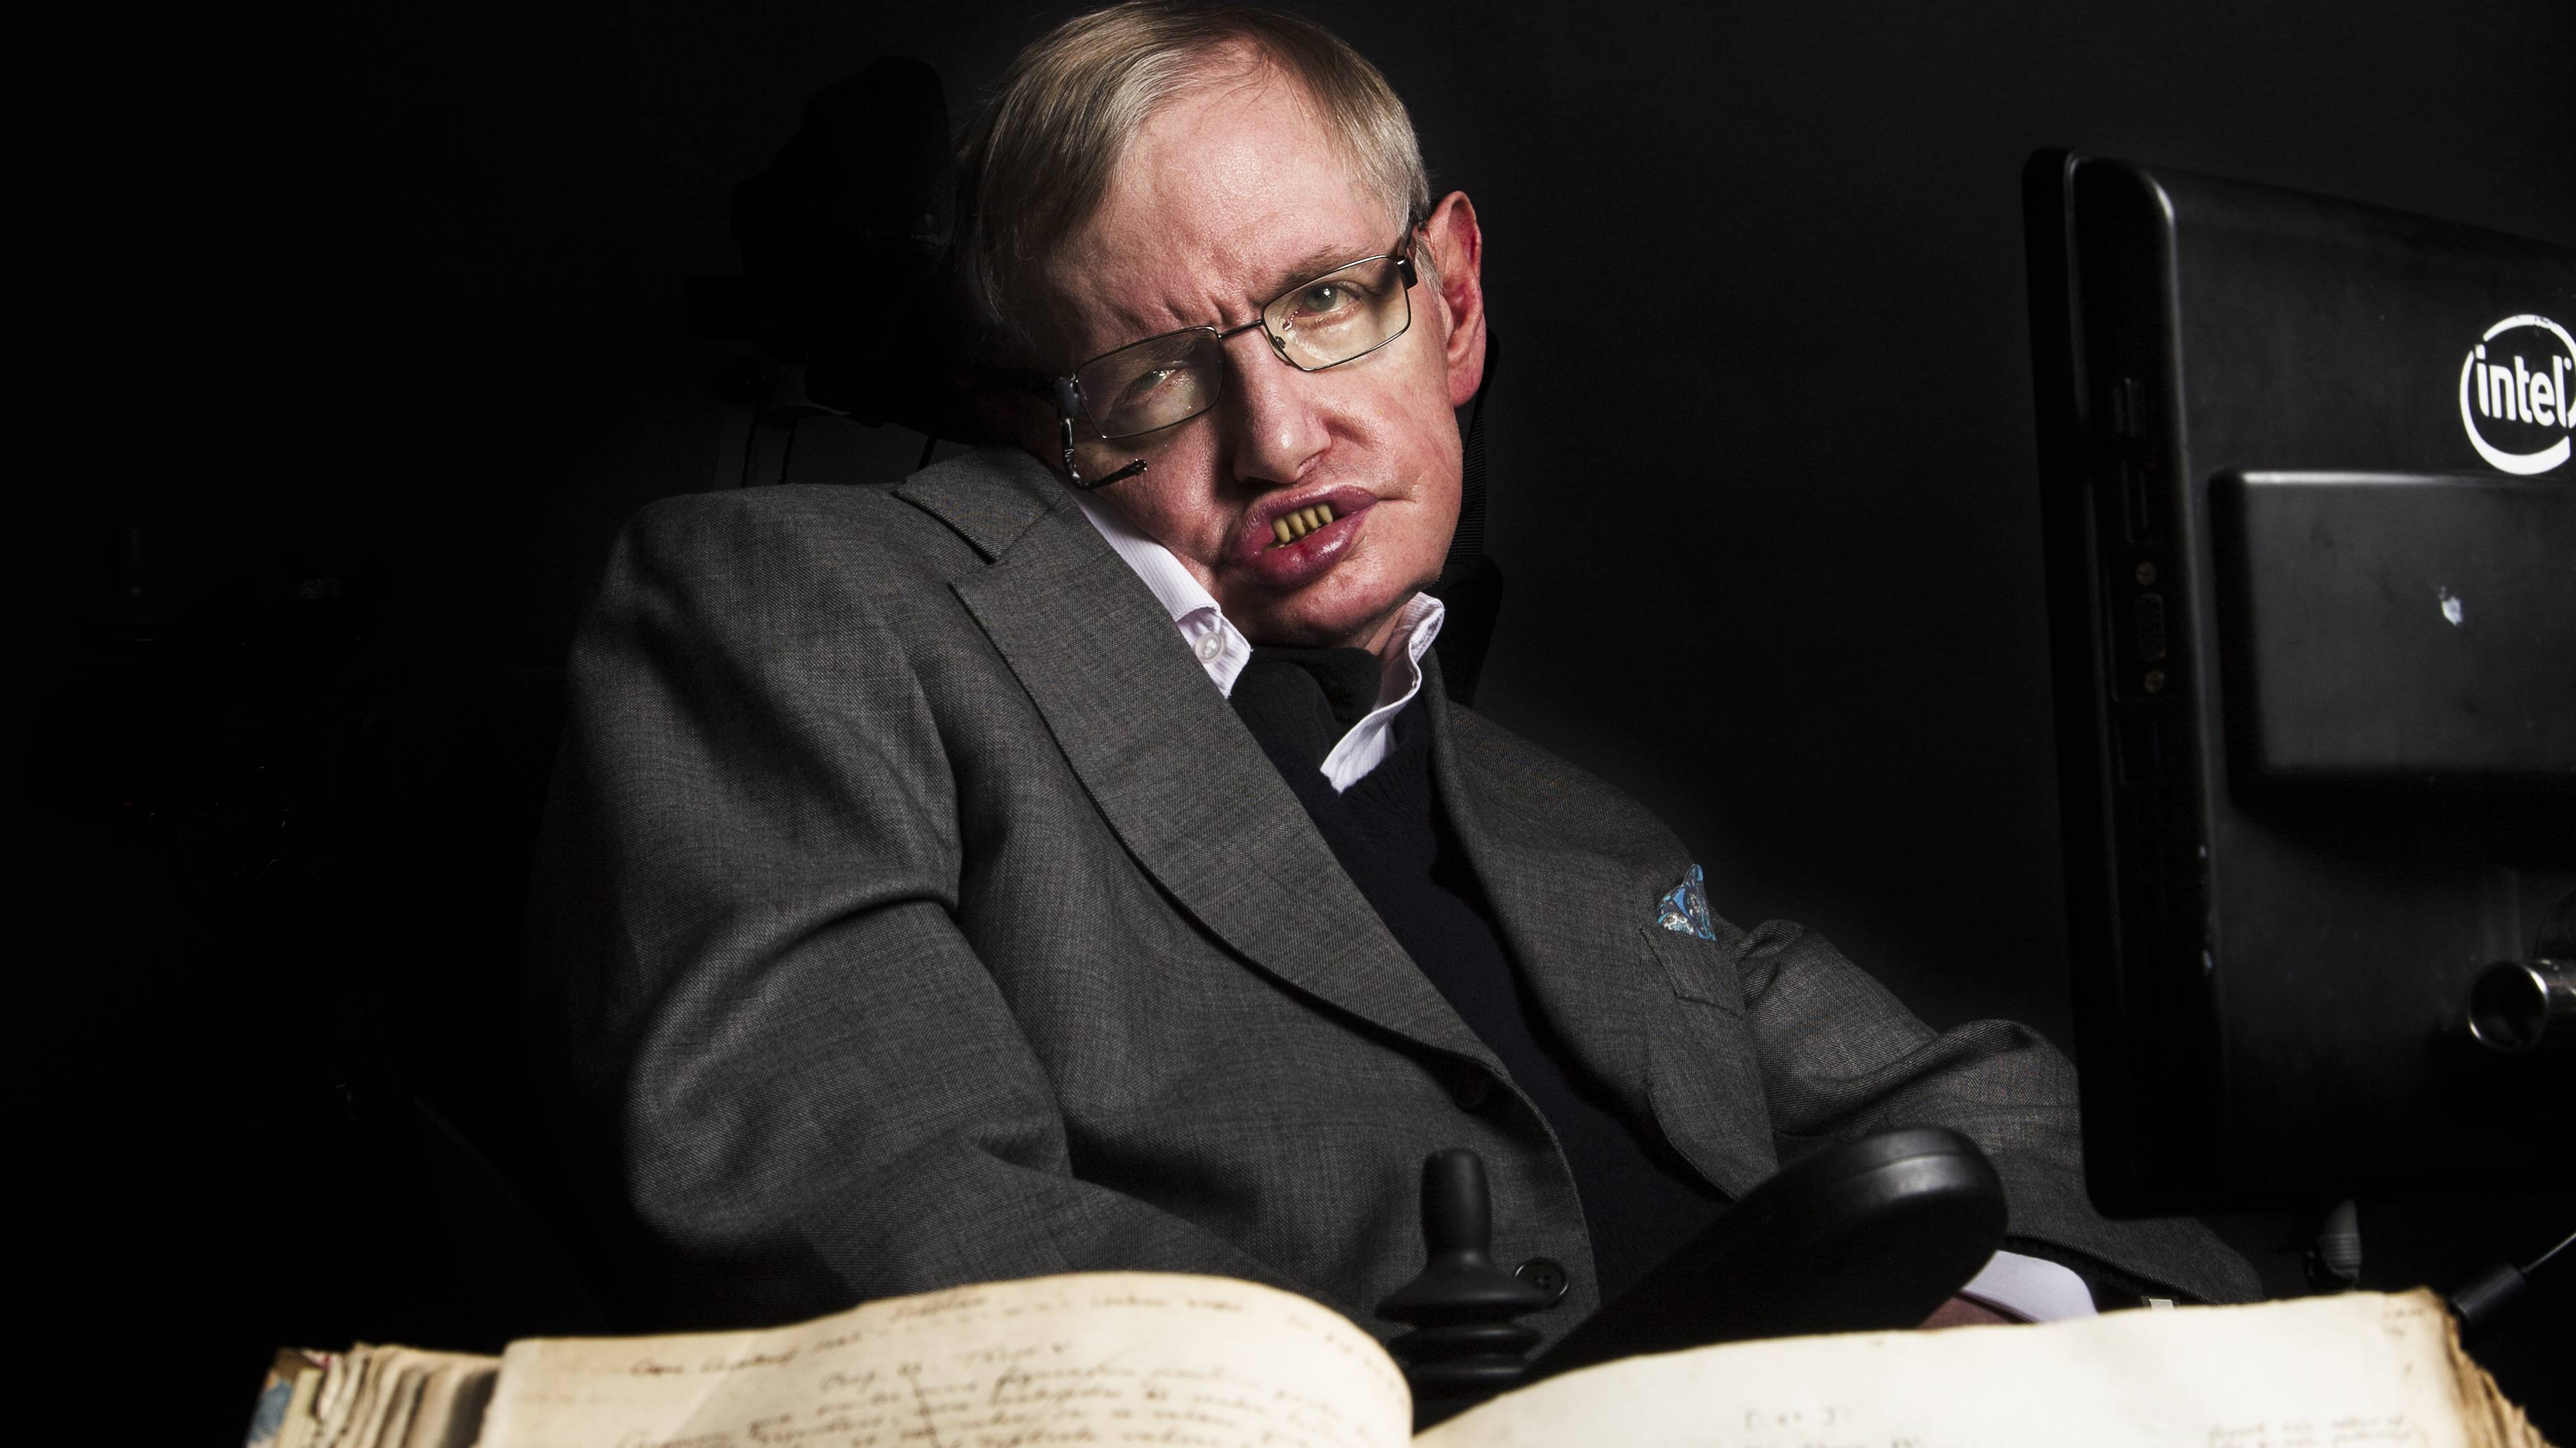 Stephen Hawking's Ph.D. Thesis Crashes Cambridge Site After It's Posted Online